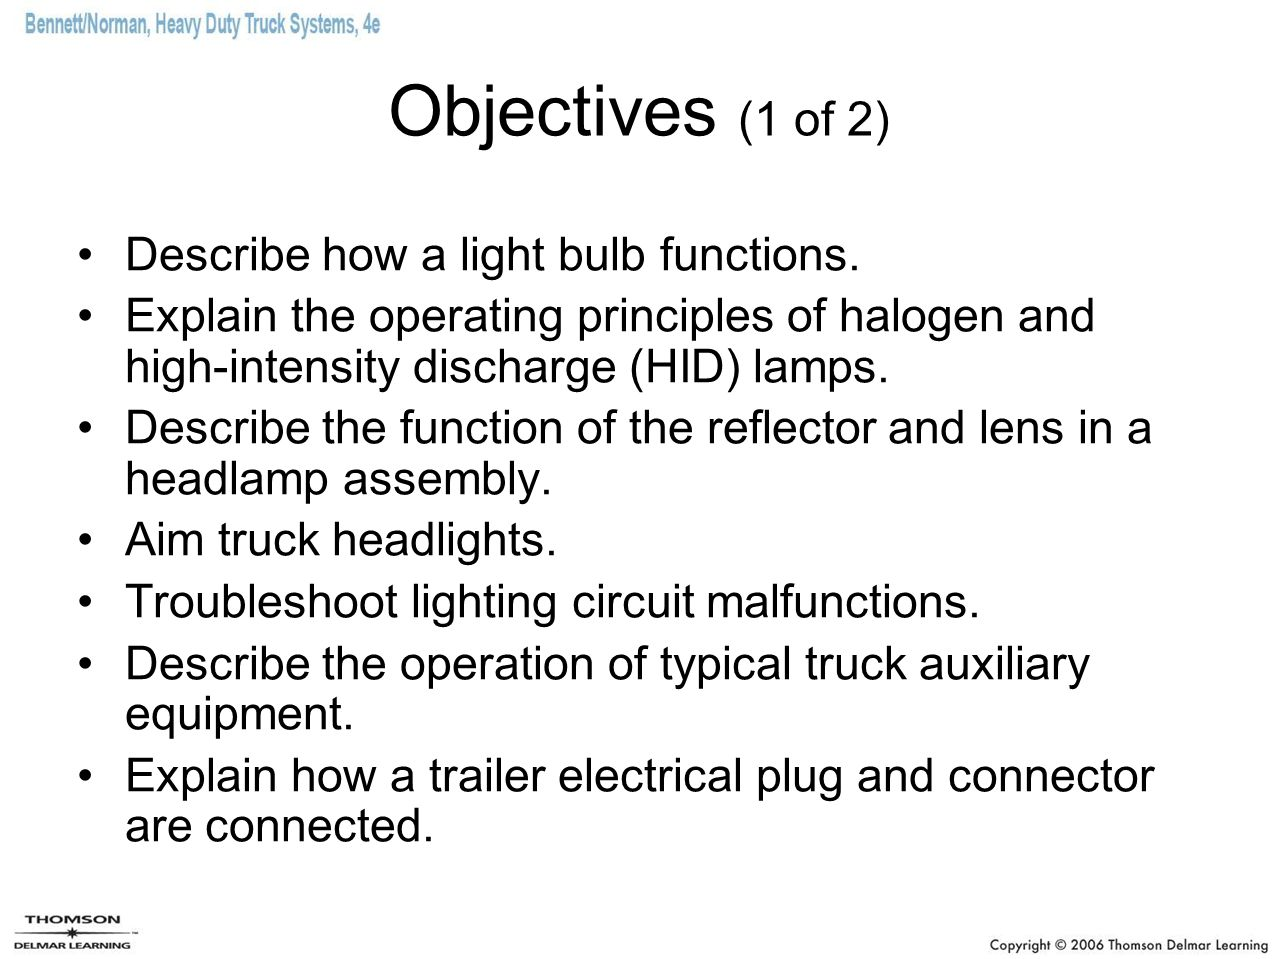 Objectives (1 of 2) Describe how a light bulb functions.